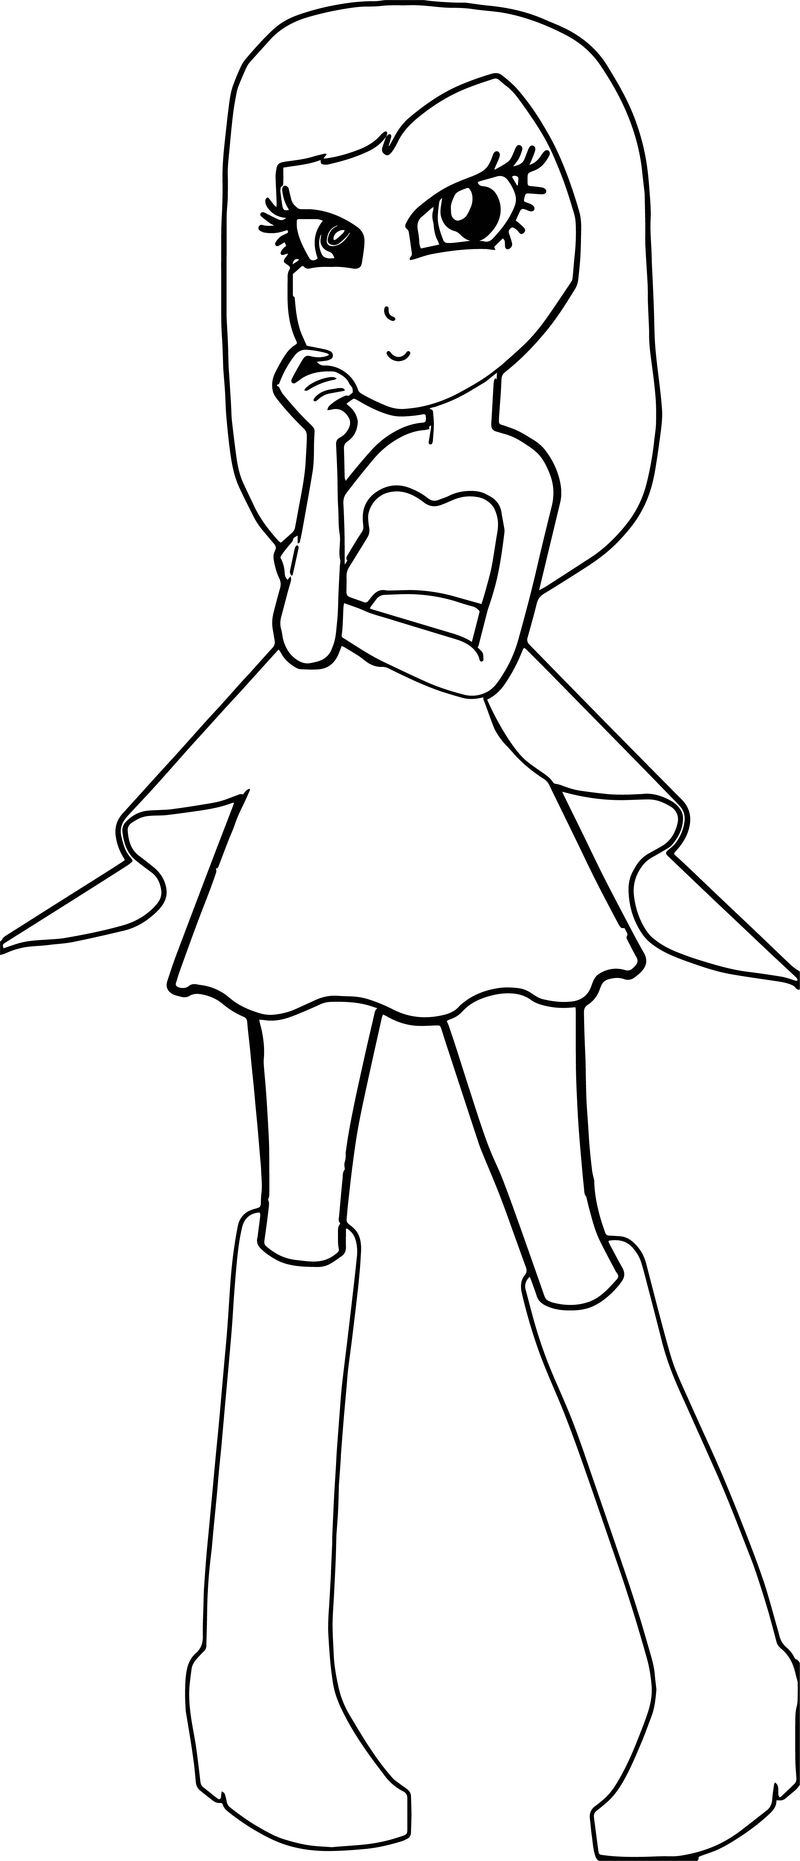 Coco As Tori From Barbie Princess And The Pop Star Coloring Page